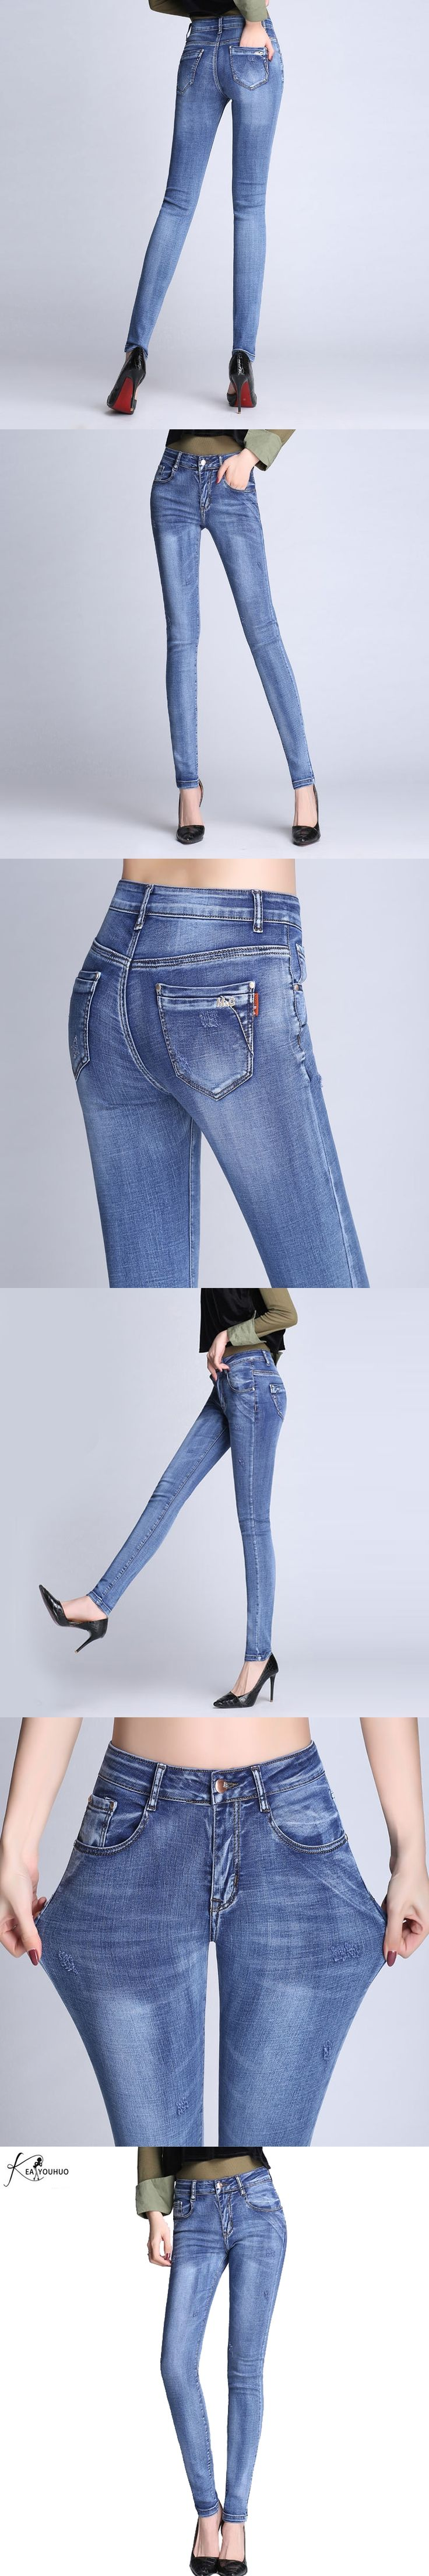 New 2017 Autumn Women Ankle-Length Cuffs High Waist Jeans Students Stretch Skinny Female Slim Pencil Pants Denim Ladies Trousers